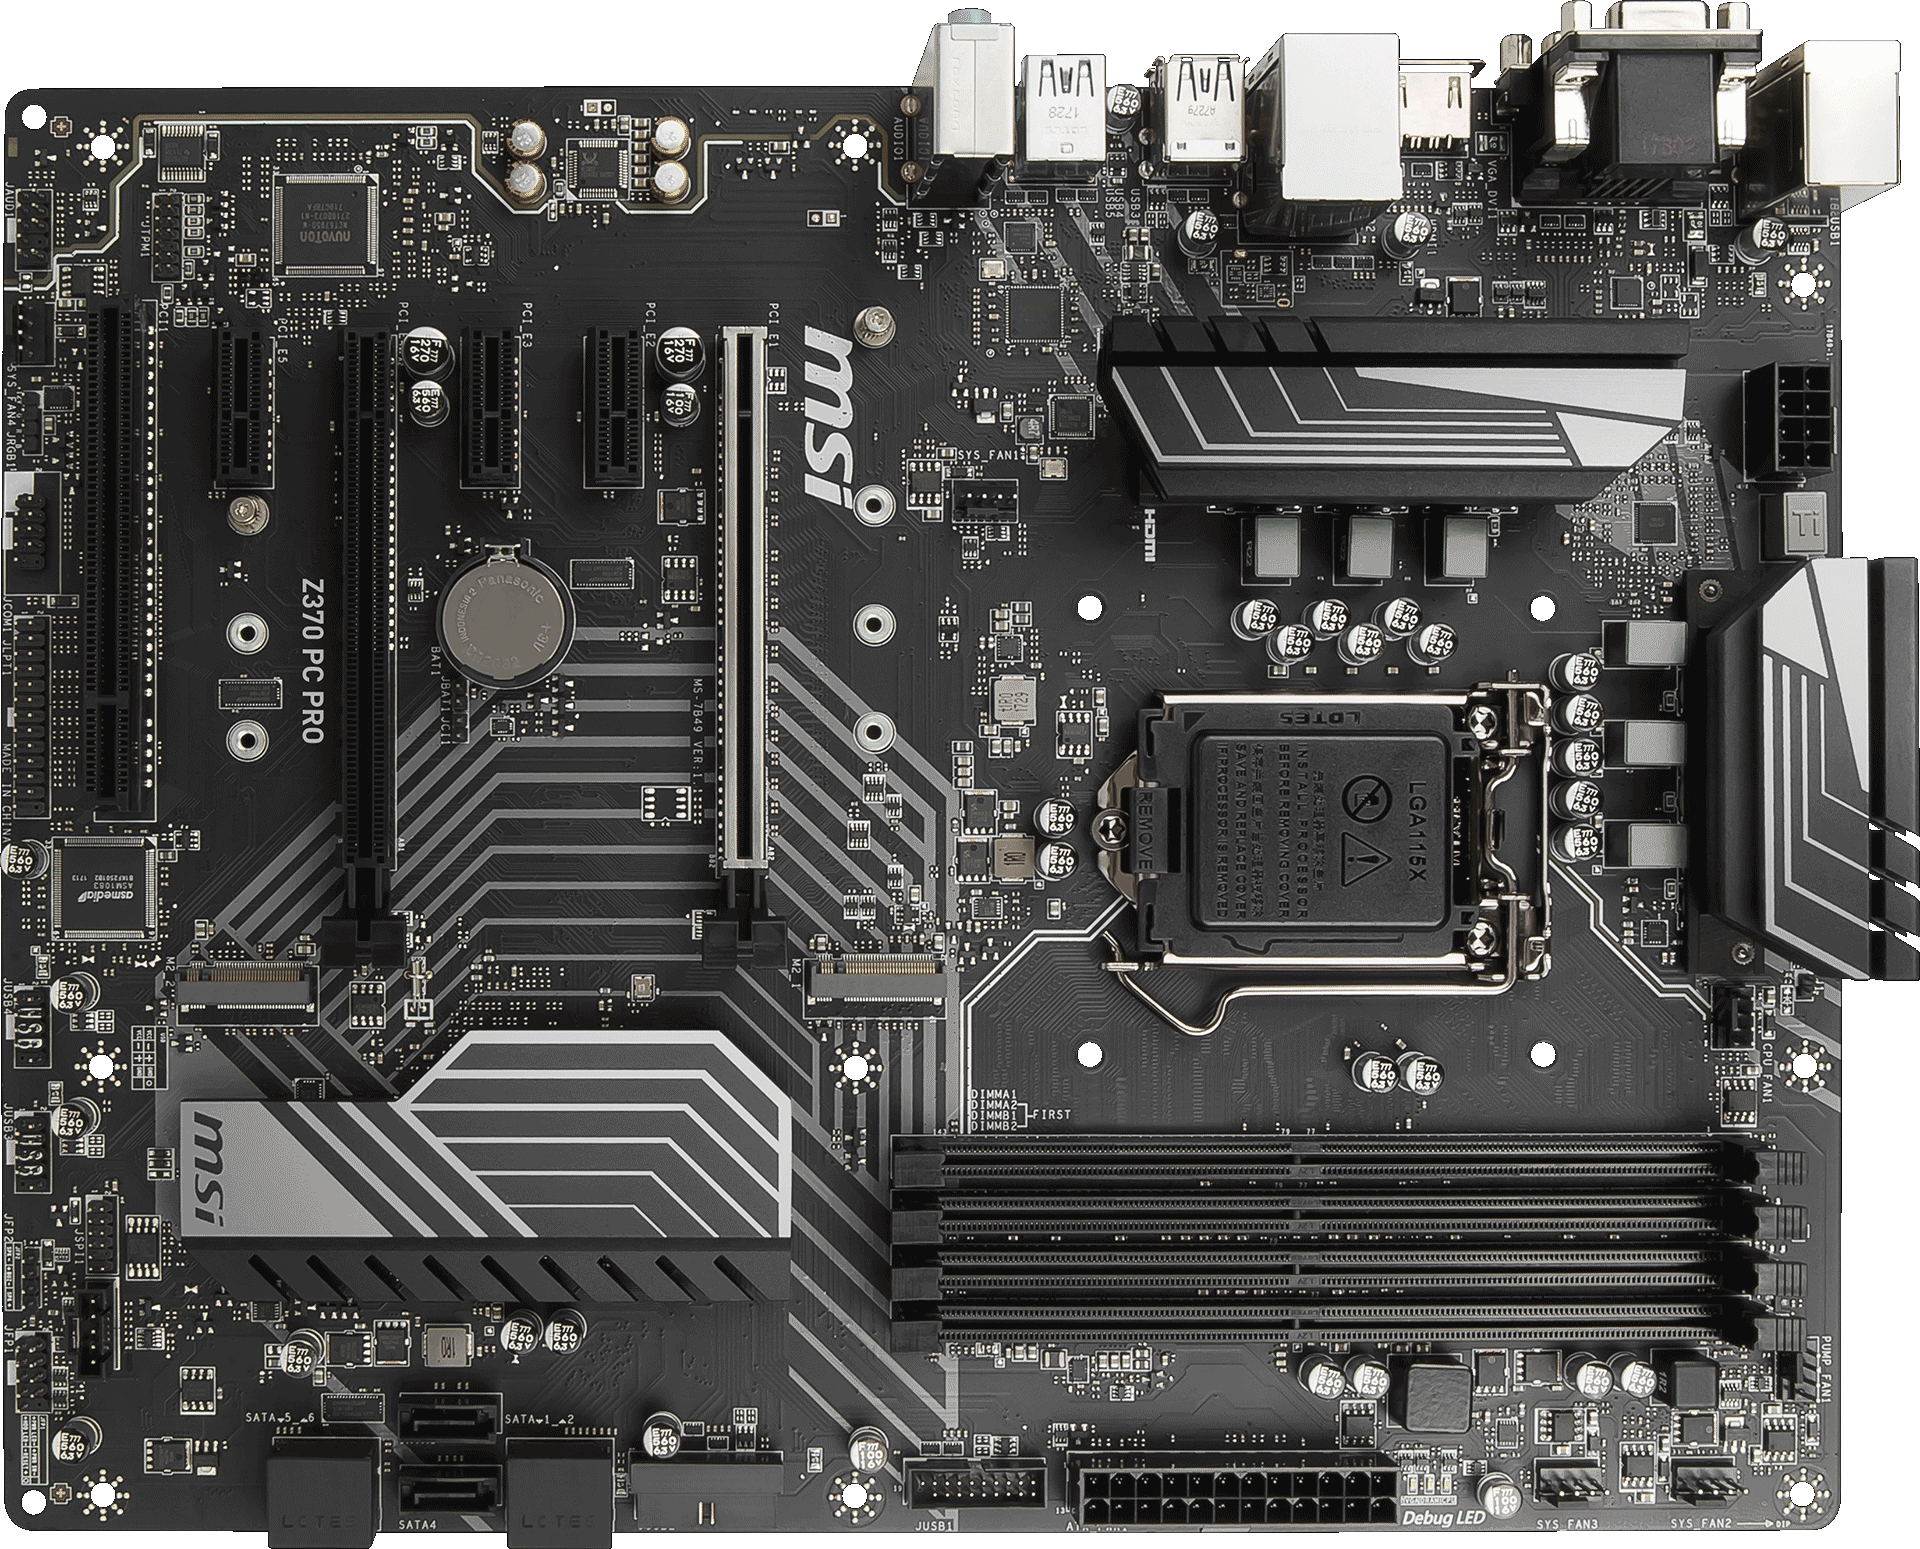 Z370 Pc Pro Motherboard The World Leader In Design Circuit Board Components Find Tuning